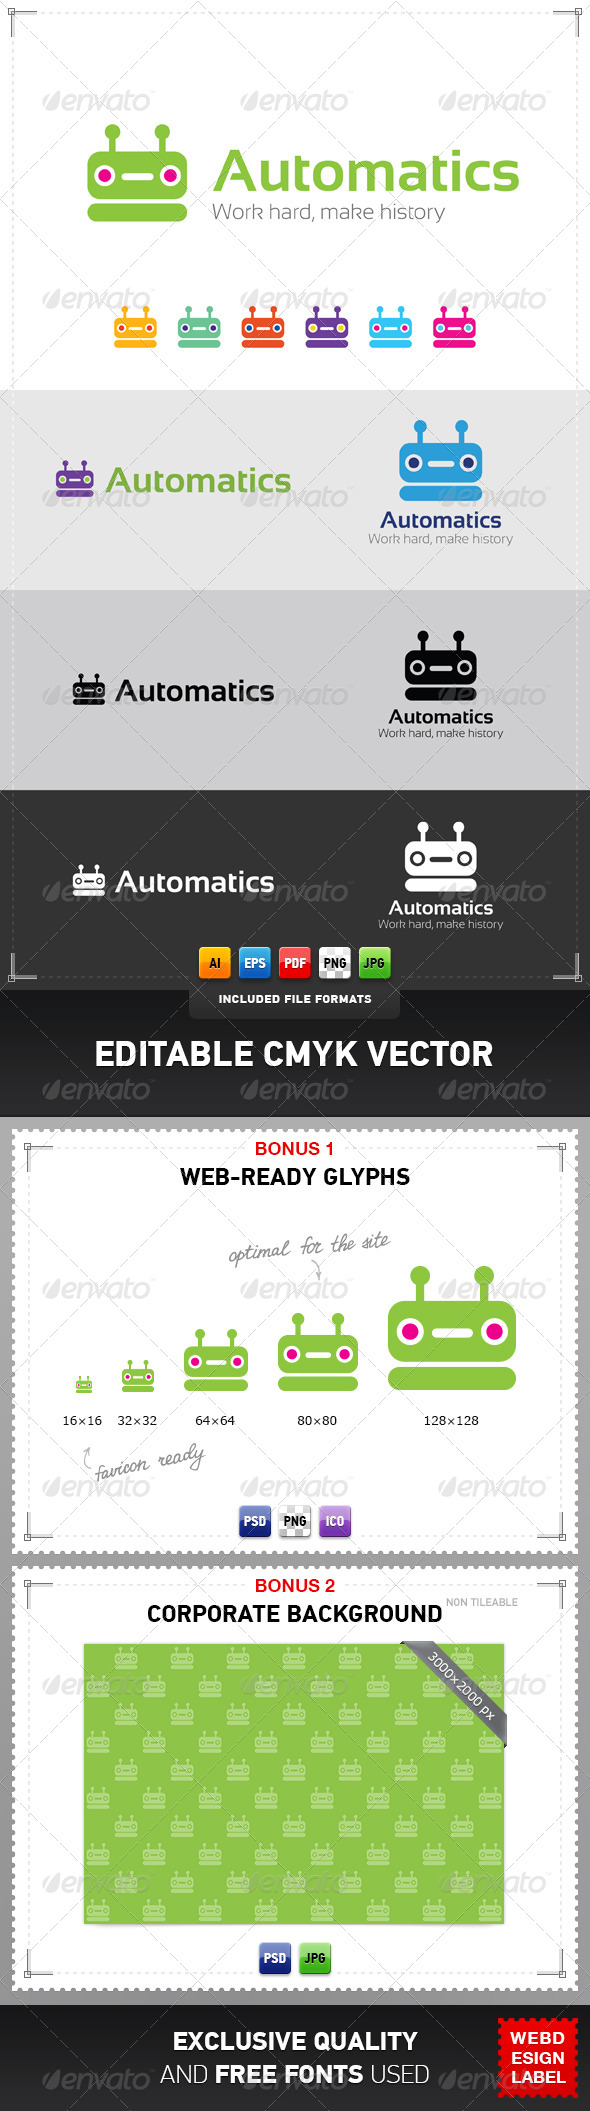 GraphicRiver Automatics Logo 4280493